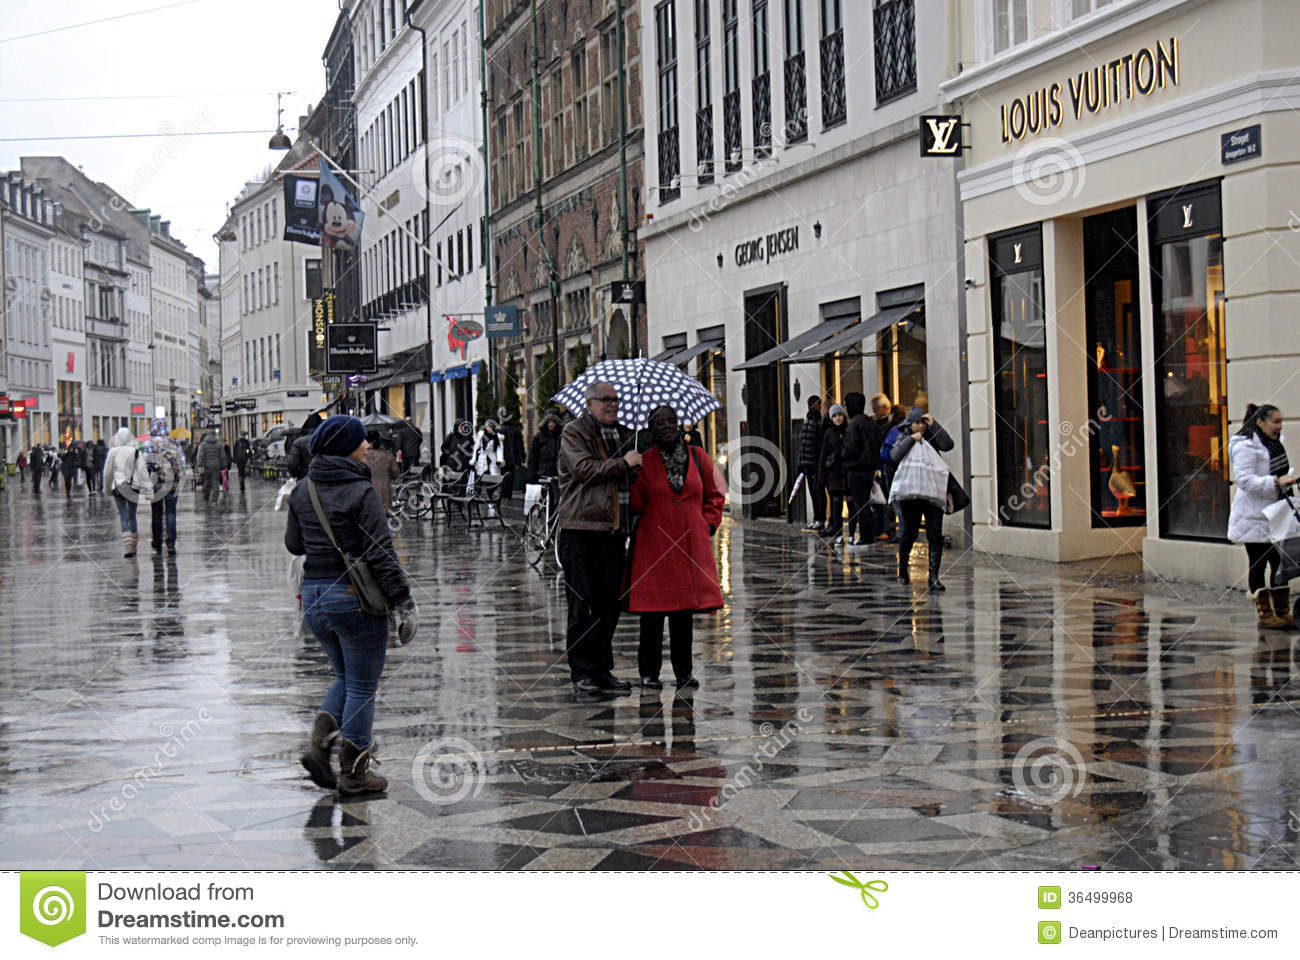 DENMARK_TRAVELERS IN SHOPPER IN RAINY WEATHER Editorial Stock Photo - Image: 36499968